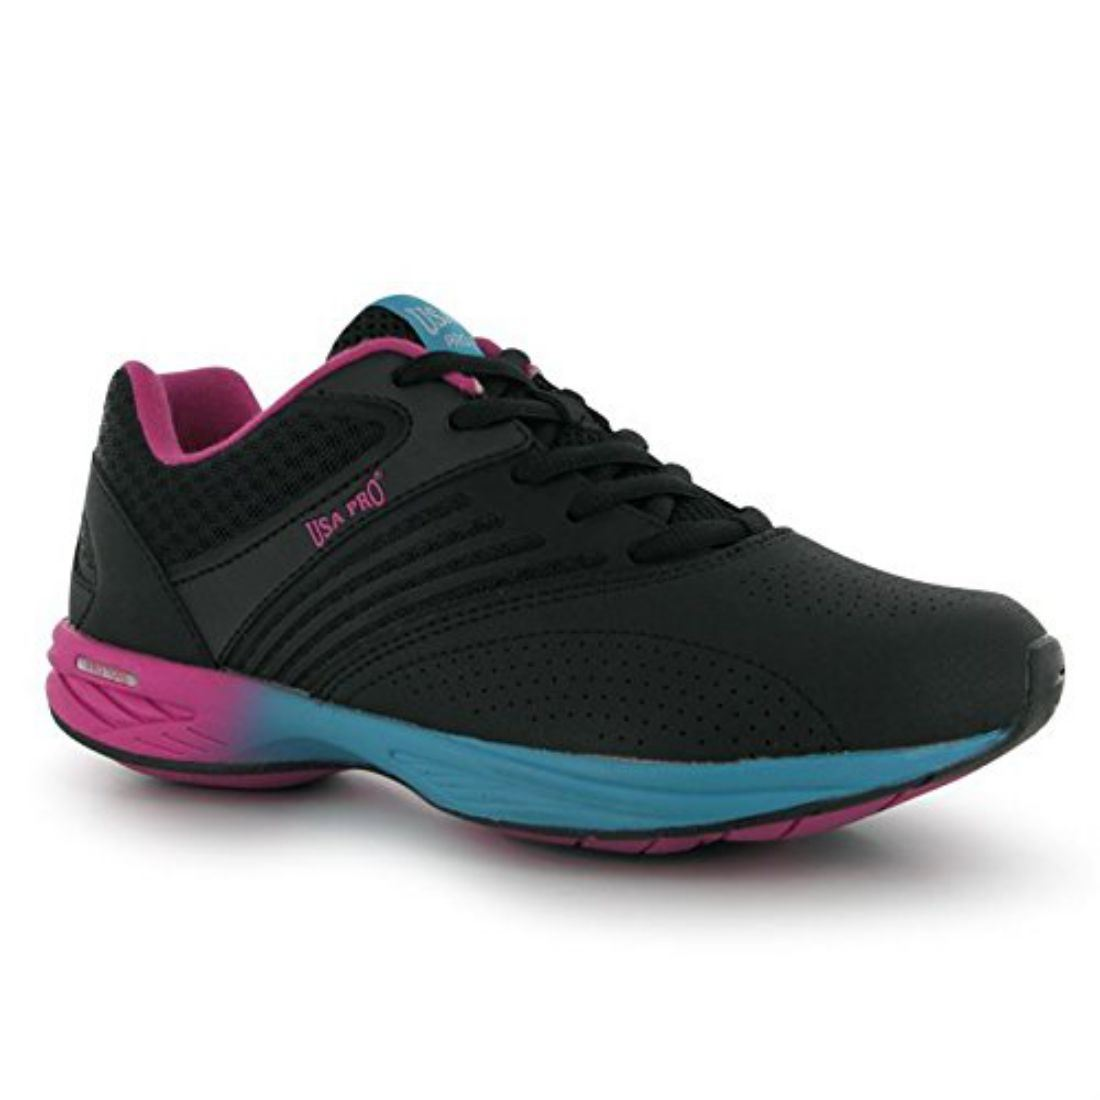 USA Pro Womens Tone Pulse Ladies Toning Shoes Trainers Sport Training Laced